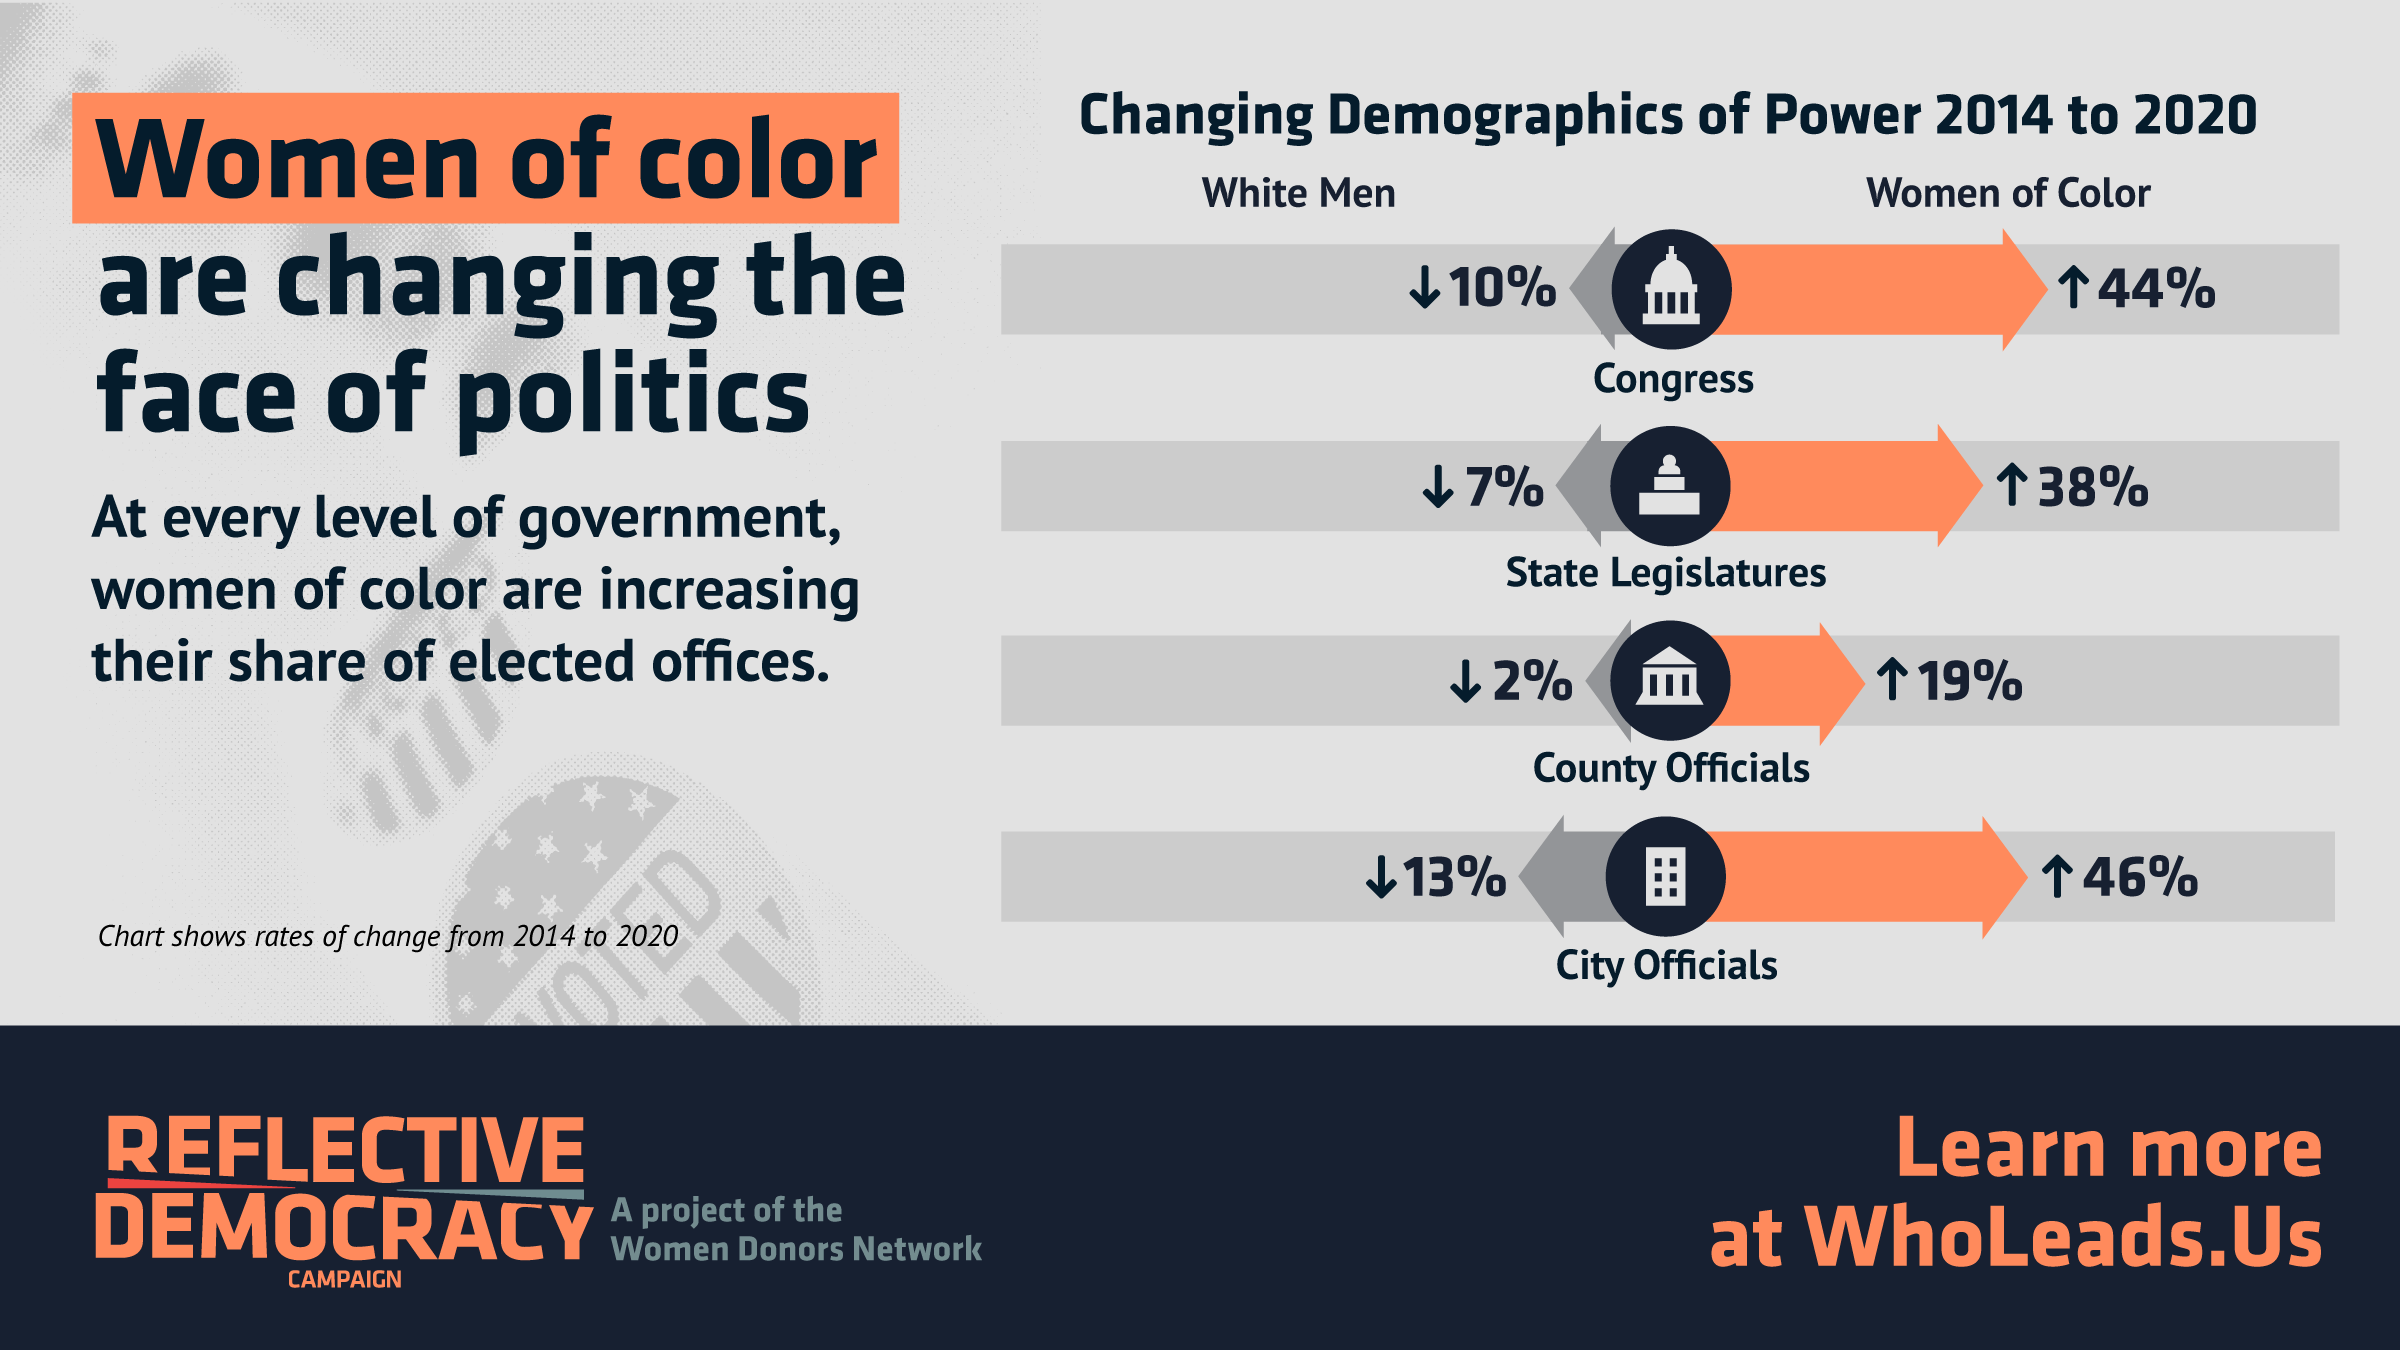 Chart showing women of color increased representation across all levels of government